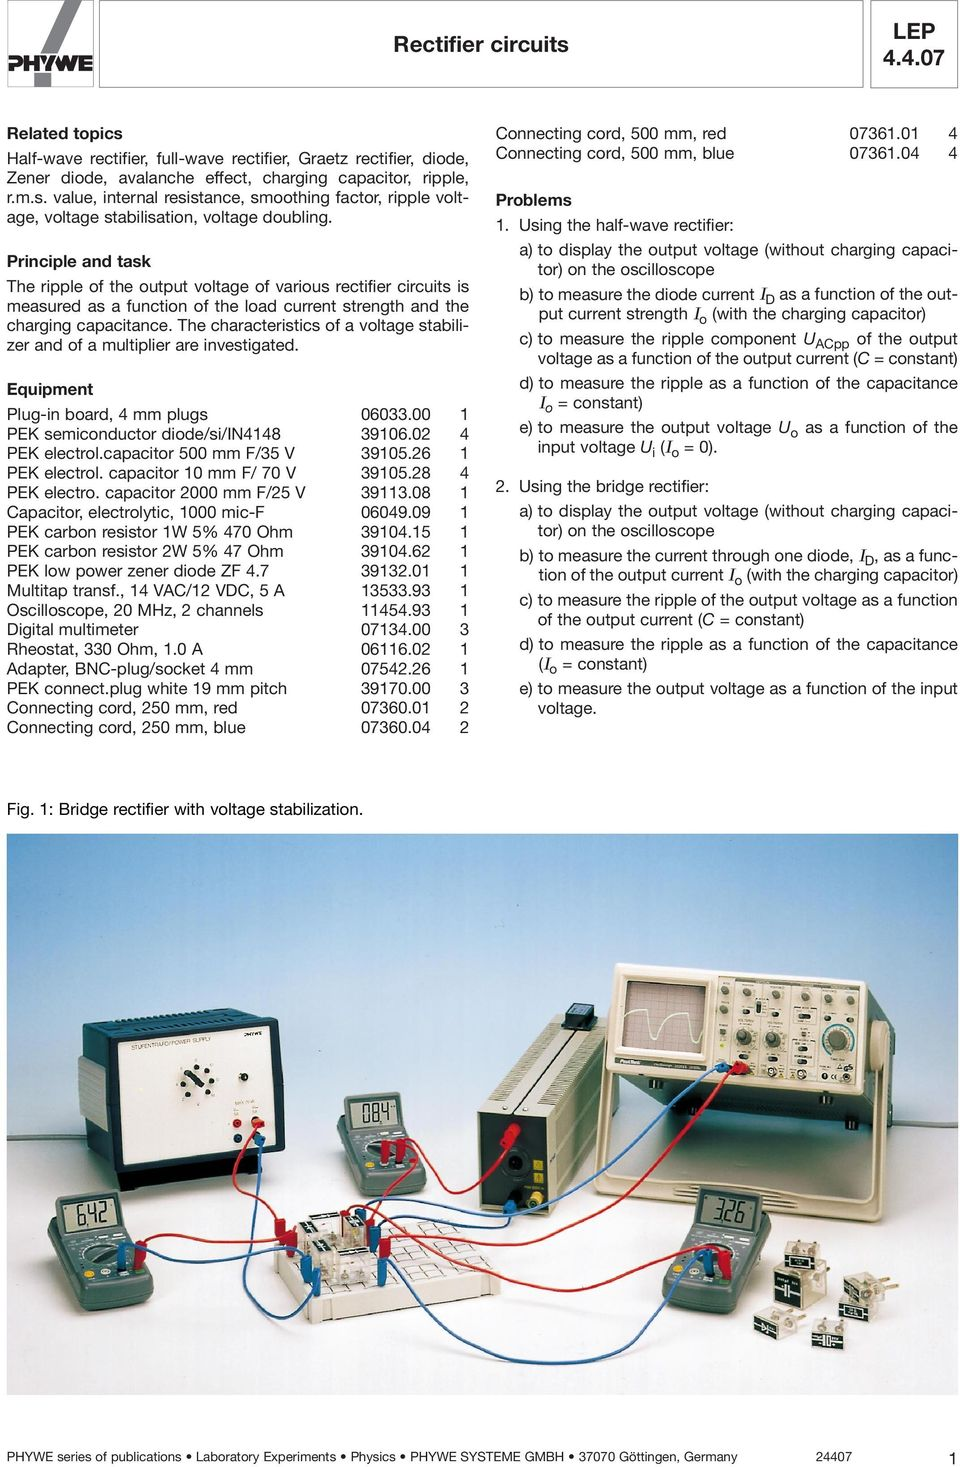 Lep Rectifier Circuits Pdf Rectifiercircuits2 The Characteristics Of A Voltage Stabilizer And Multiplier Are Investigated Equipment Plug